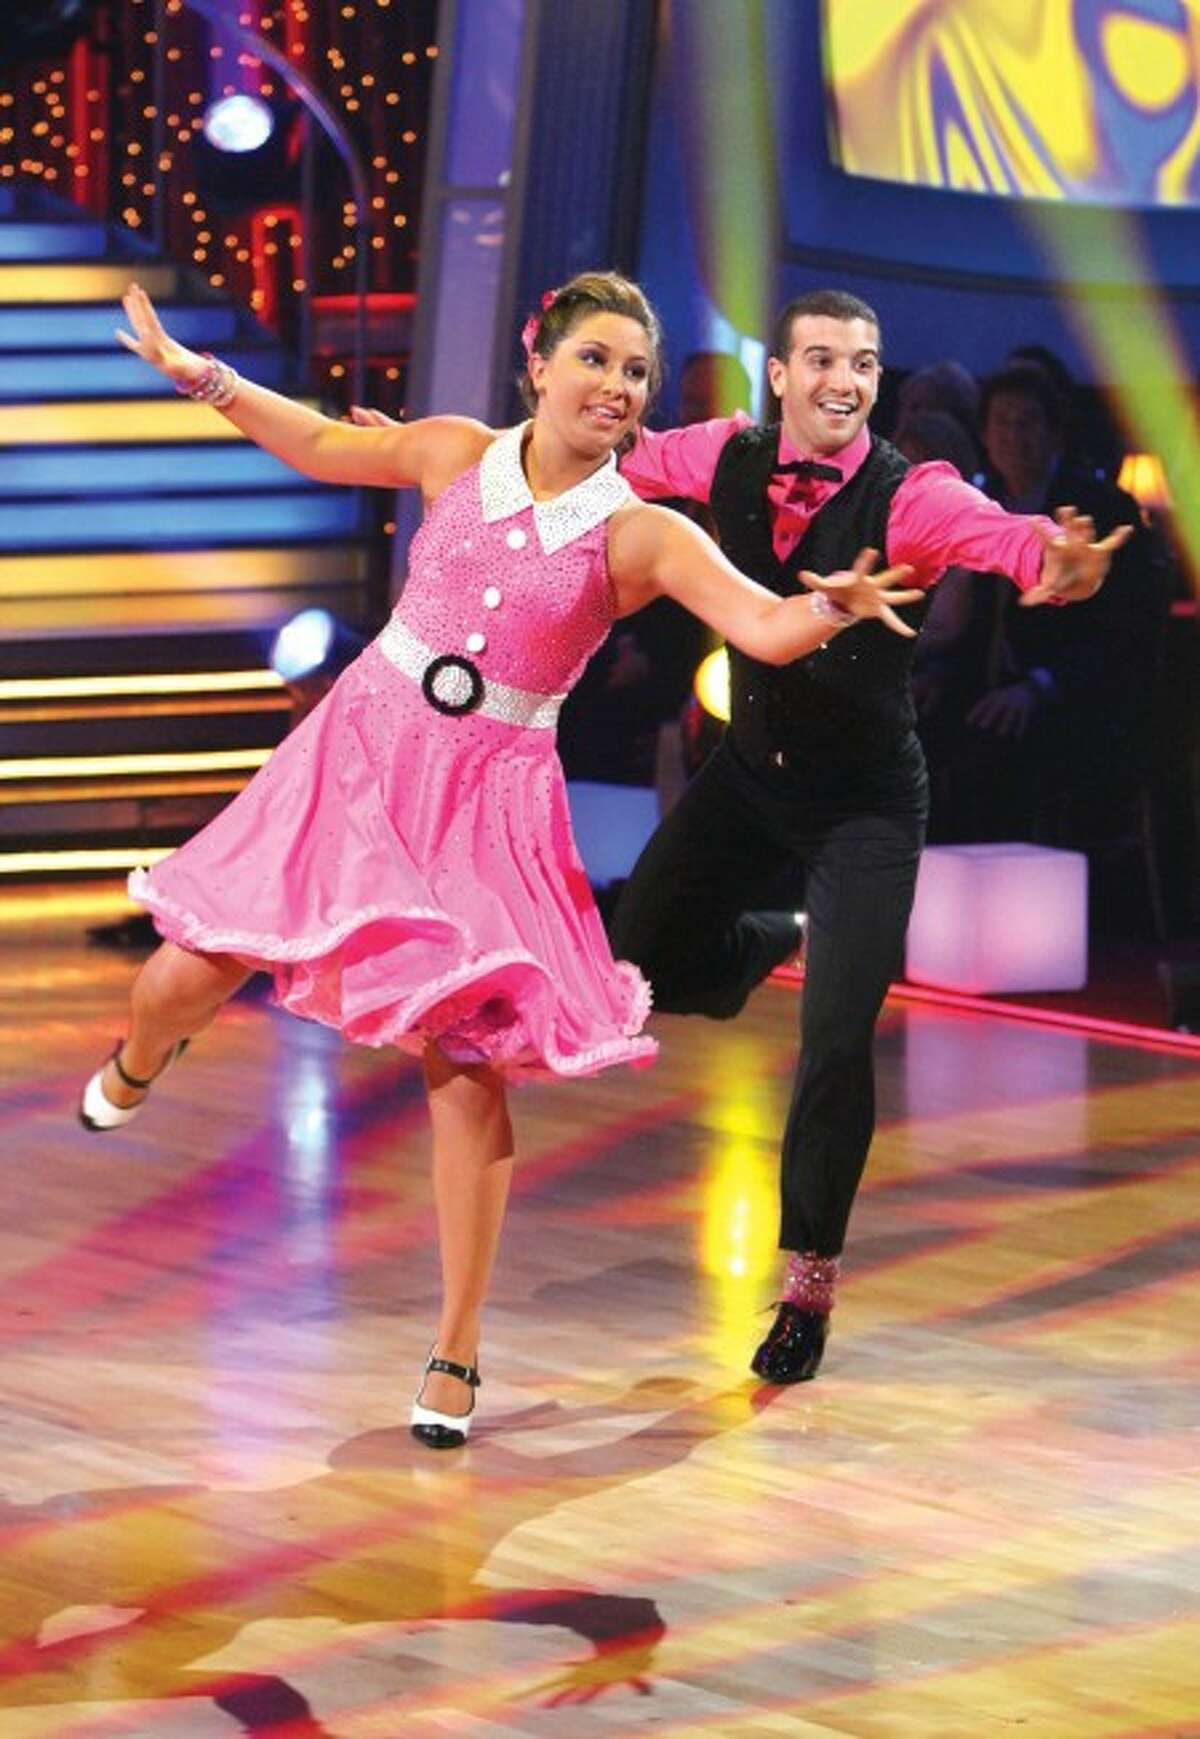 ** ADVANCE FOR USE THURSDAY, DEC. 23, 2010 AND THEREAFTER ** FILE - In this Monday, Oct. 18, 2010 image released by ABC, Bristol Palin, left, and her partner Mark Ballas perform during the celebrity dance competition television series